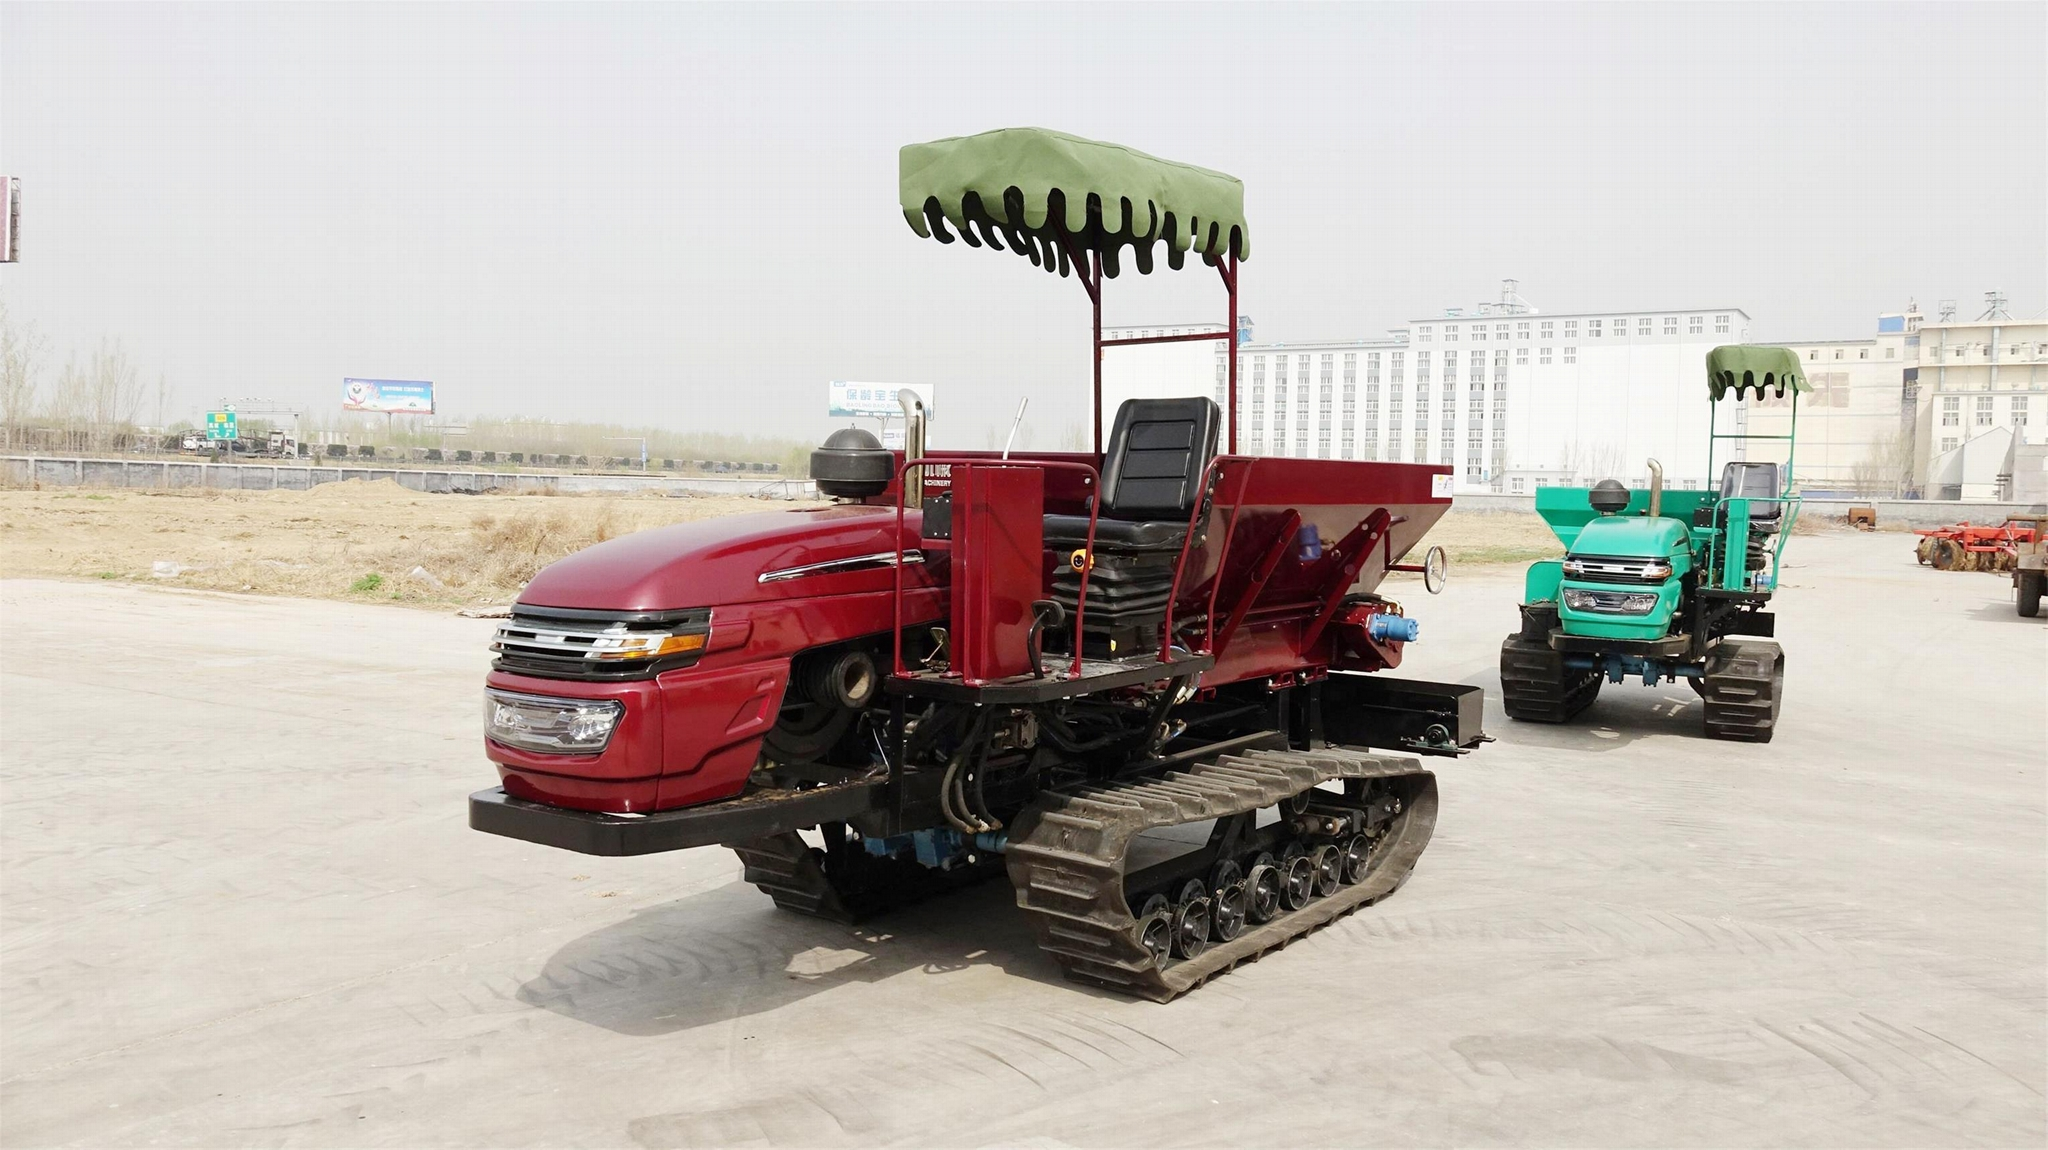 crawler type Muck spreader for spreading solid manure and fertilizer 9